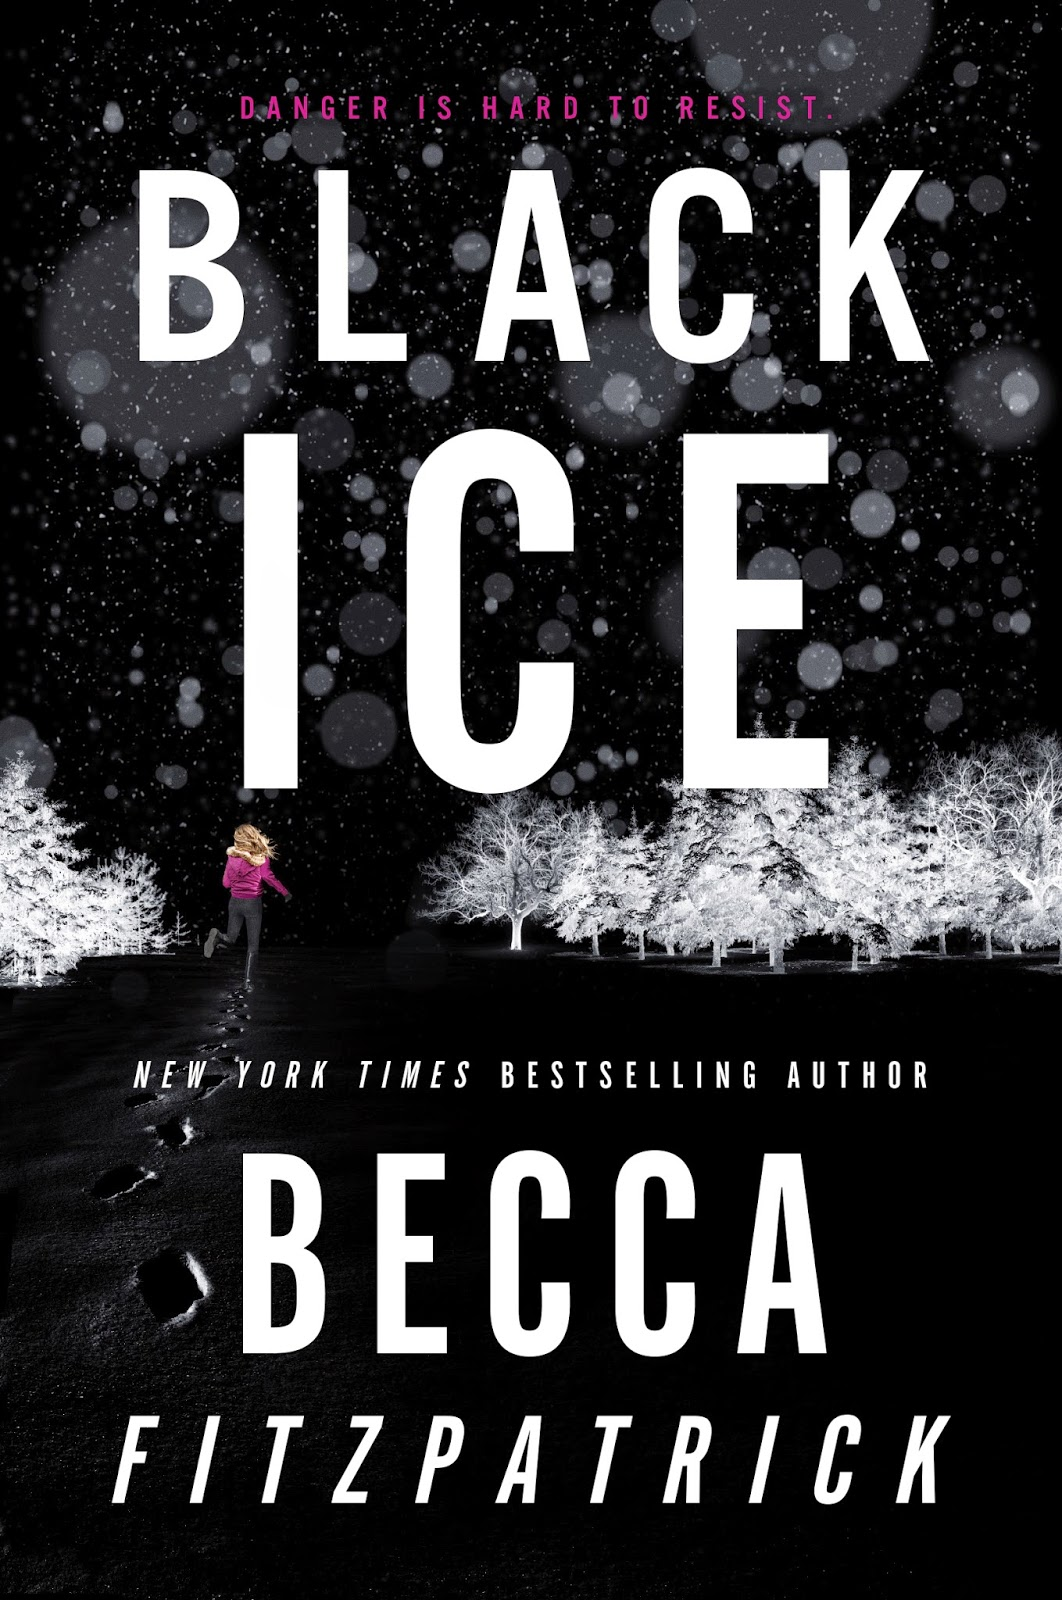 Black Ice Book Cover Model ~ Becca fitzpatrick a new cover for one book title